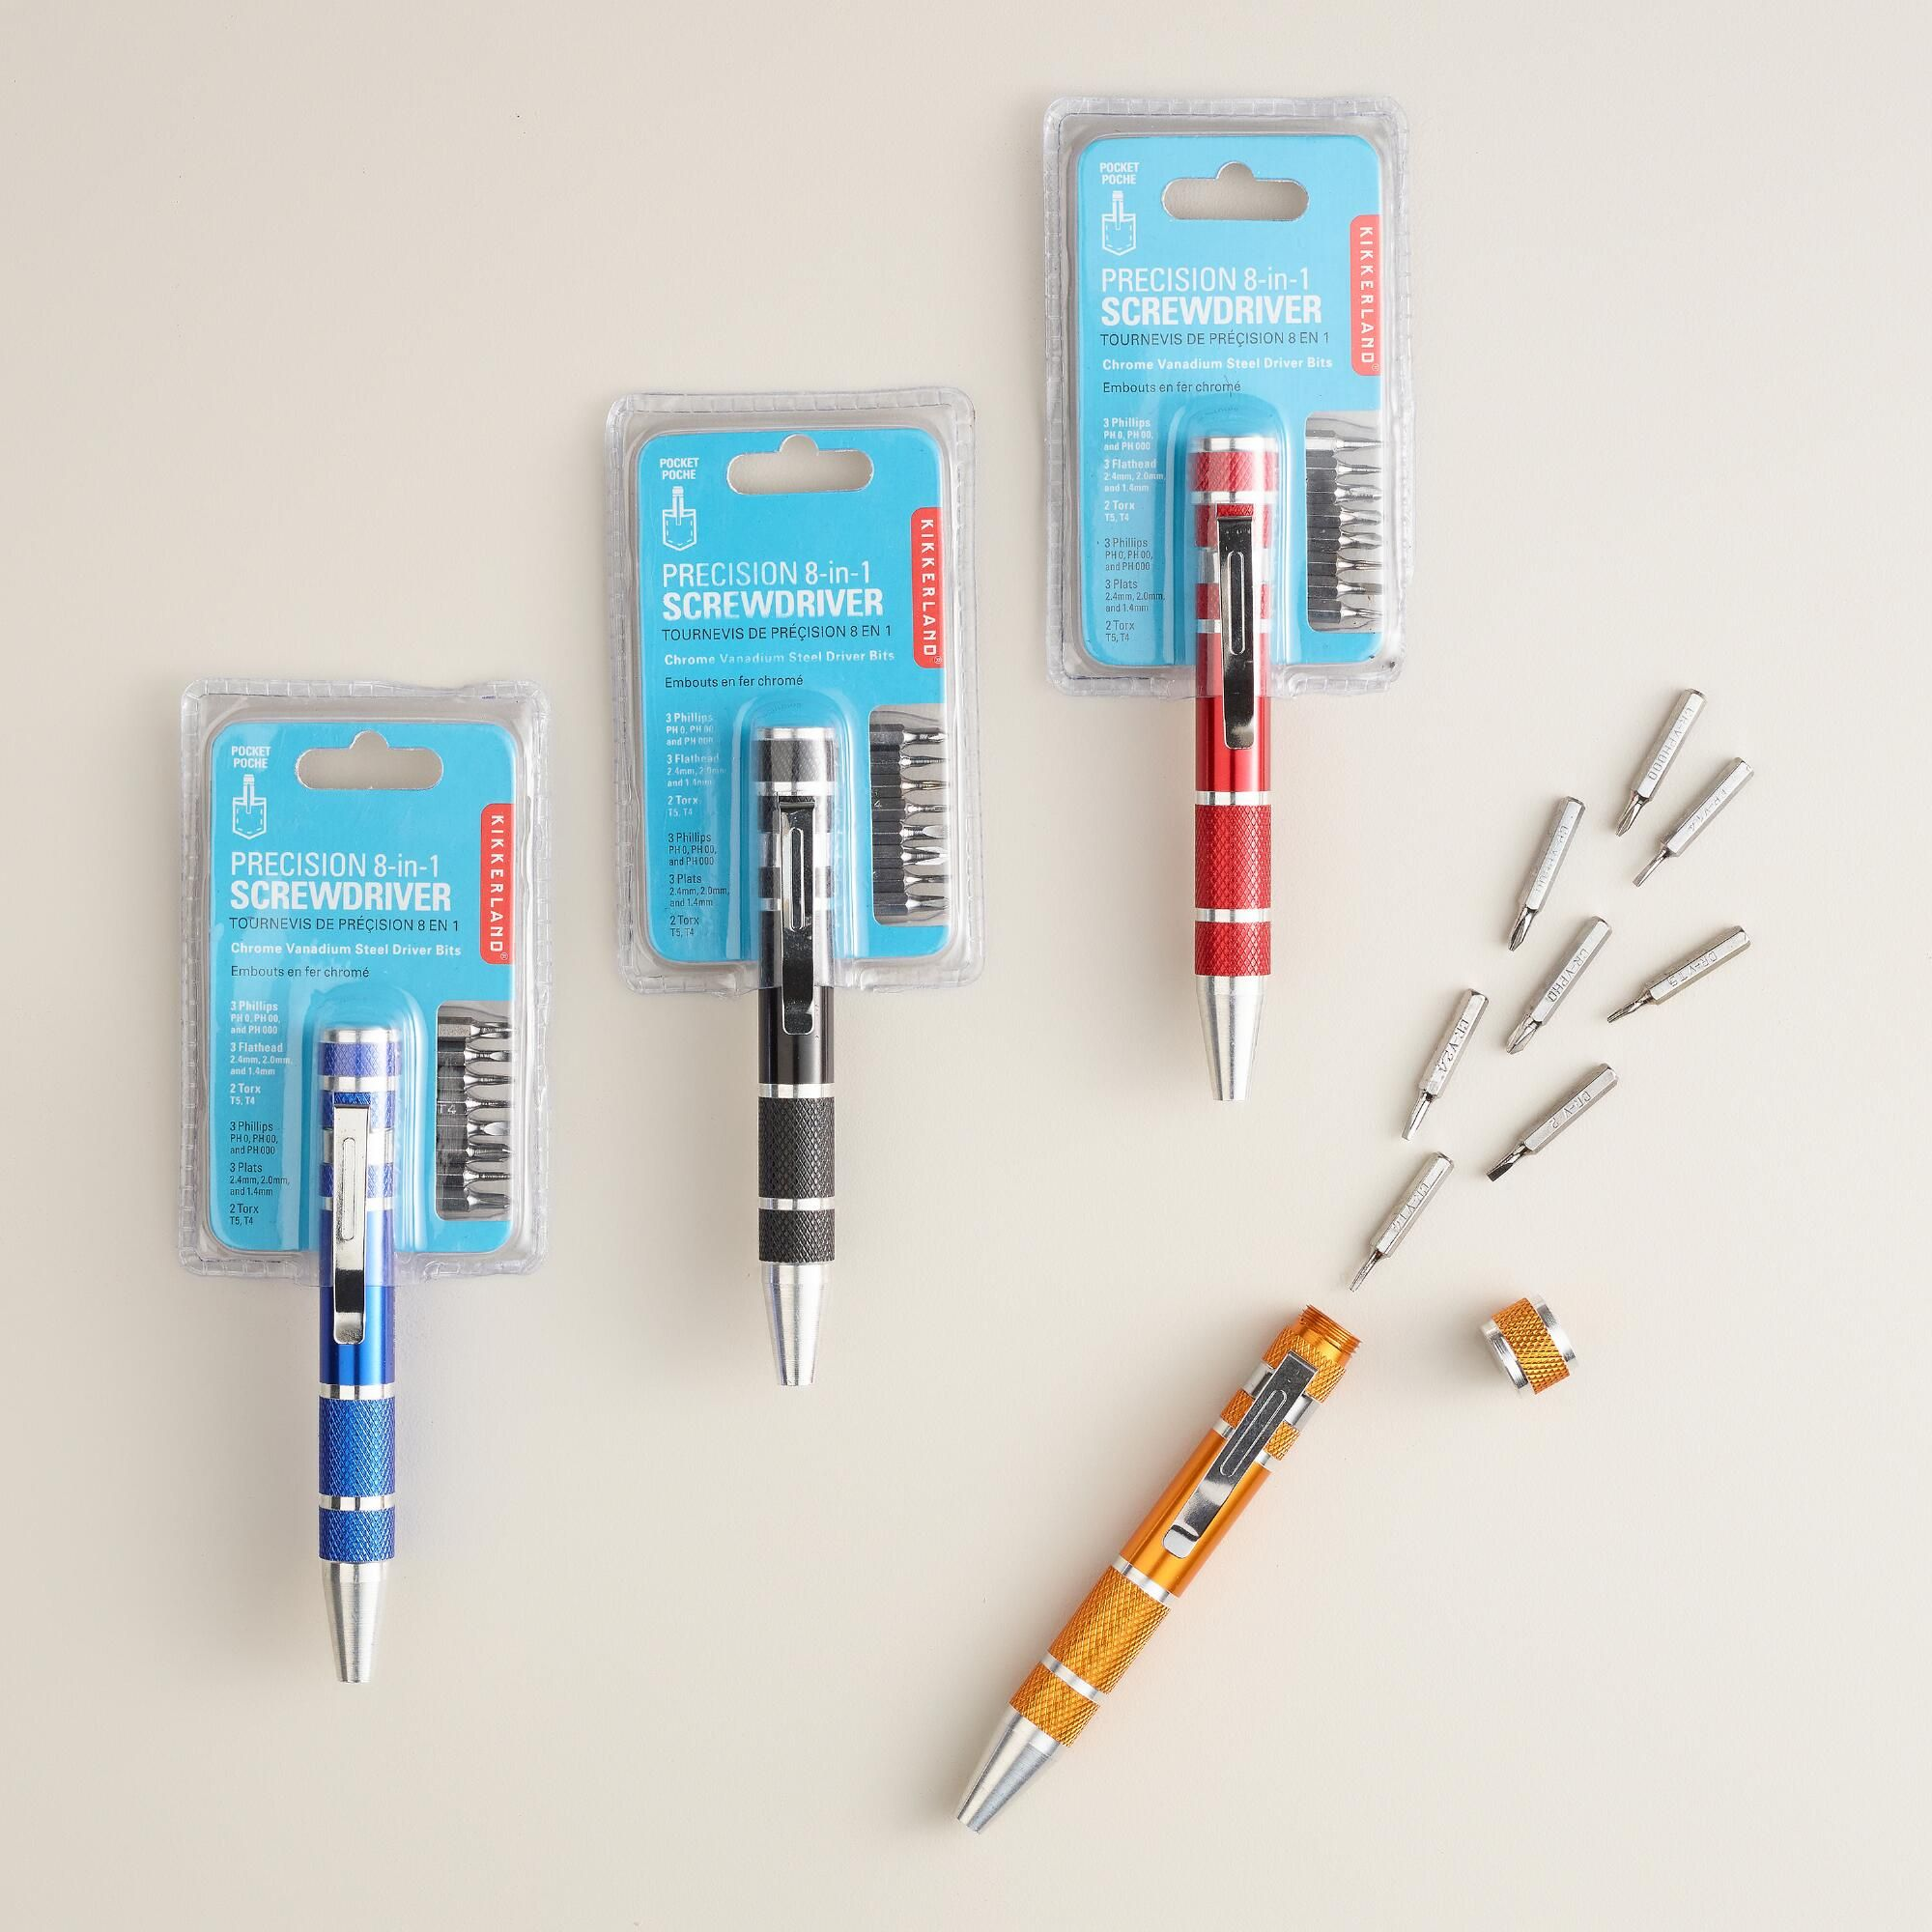 8-in-1 Travel Screwdriver